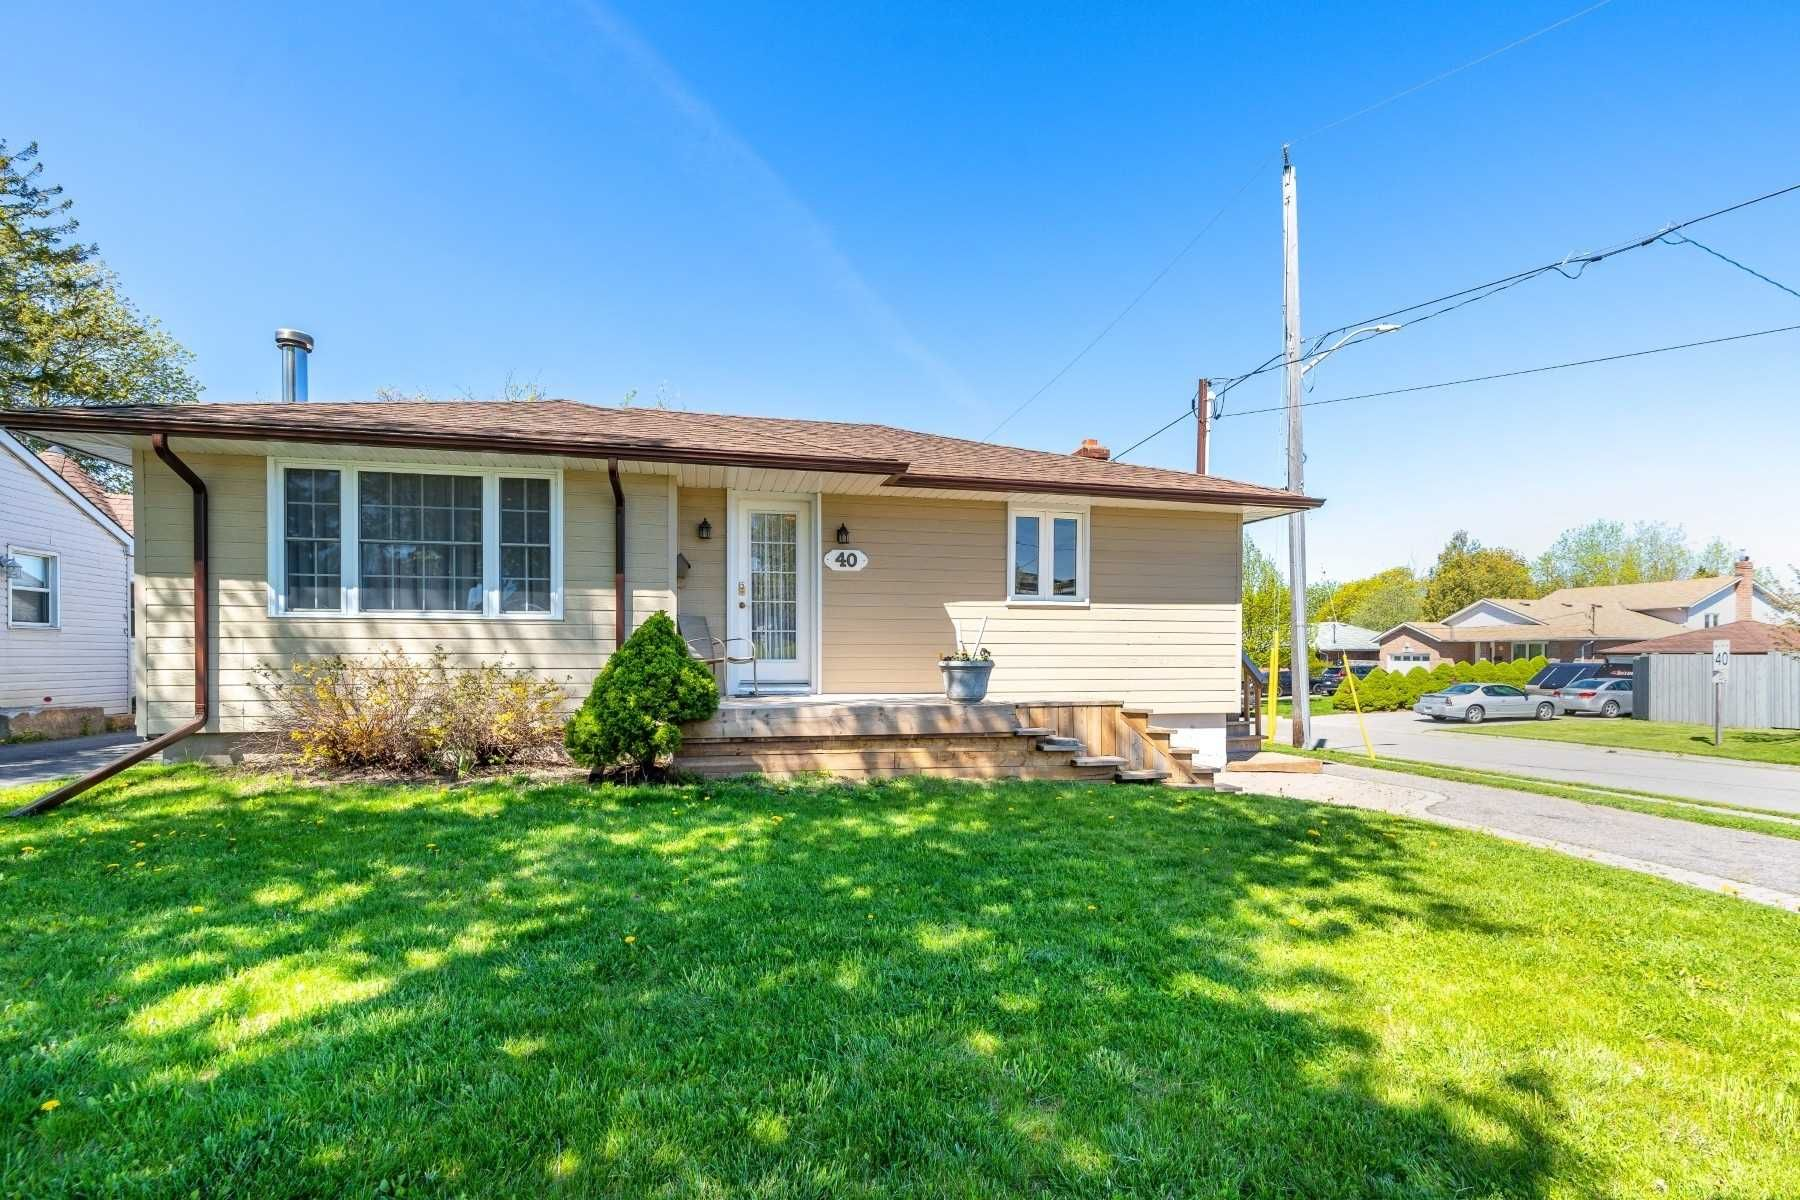 Photo 1: Photos: 40 Eastlawn Street in Oshawa: Donevan House (Bungalow) for sale : MLS®# E4769026